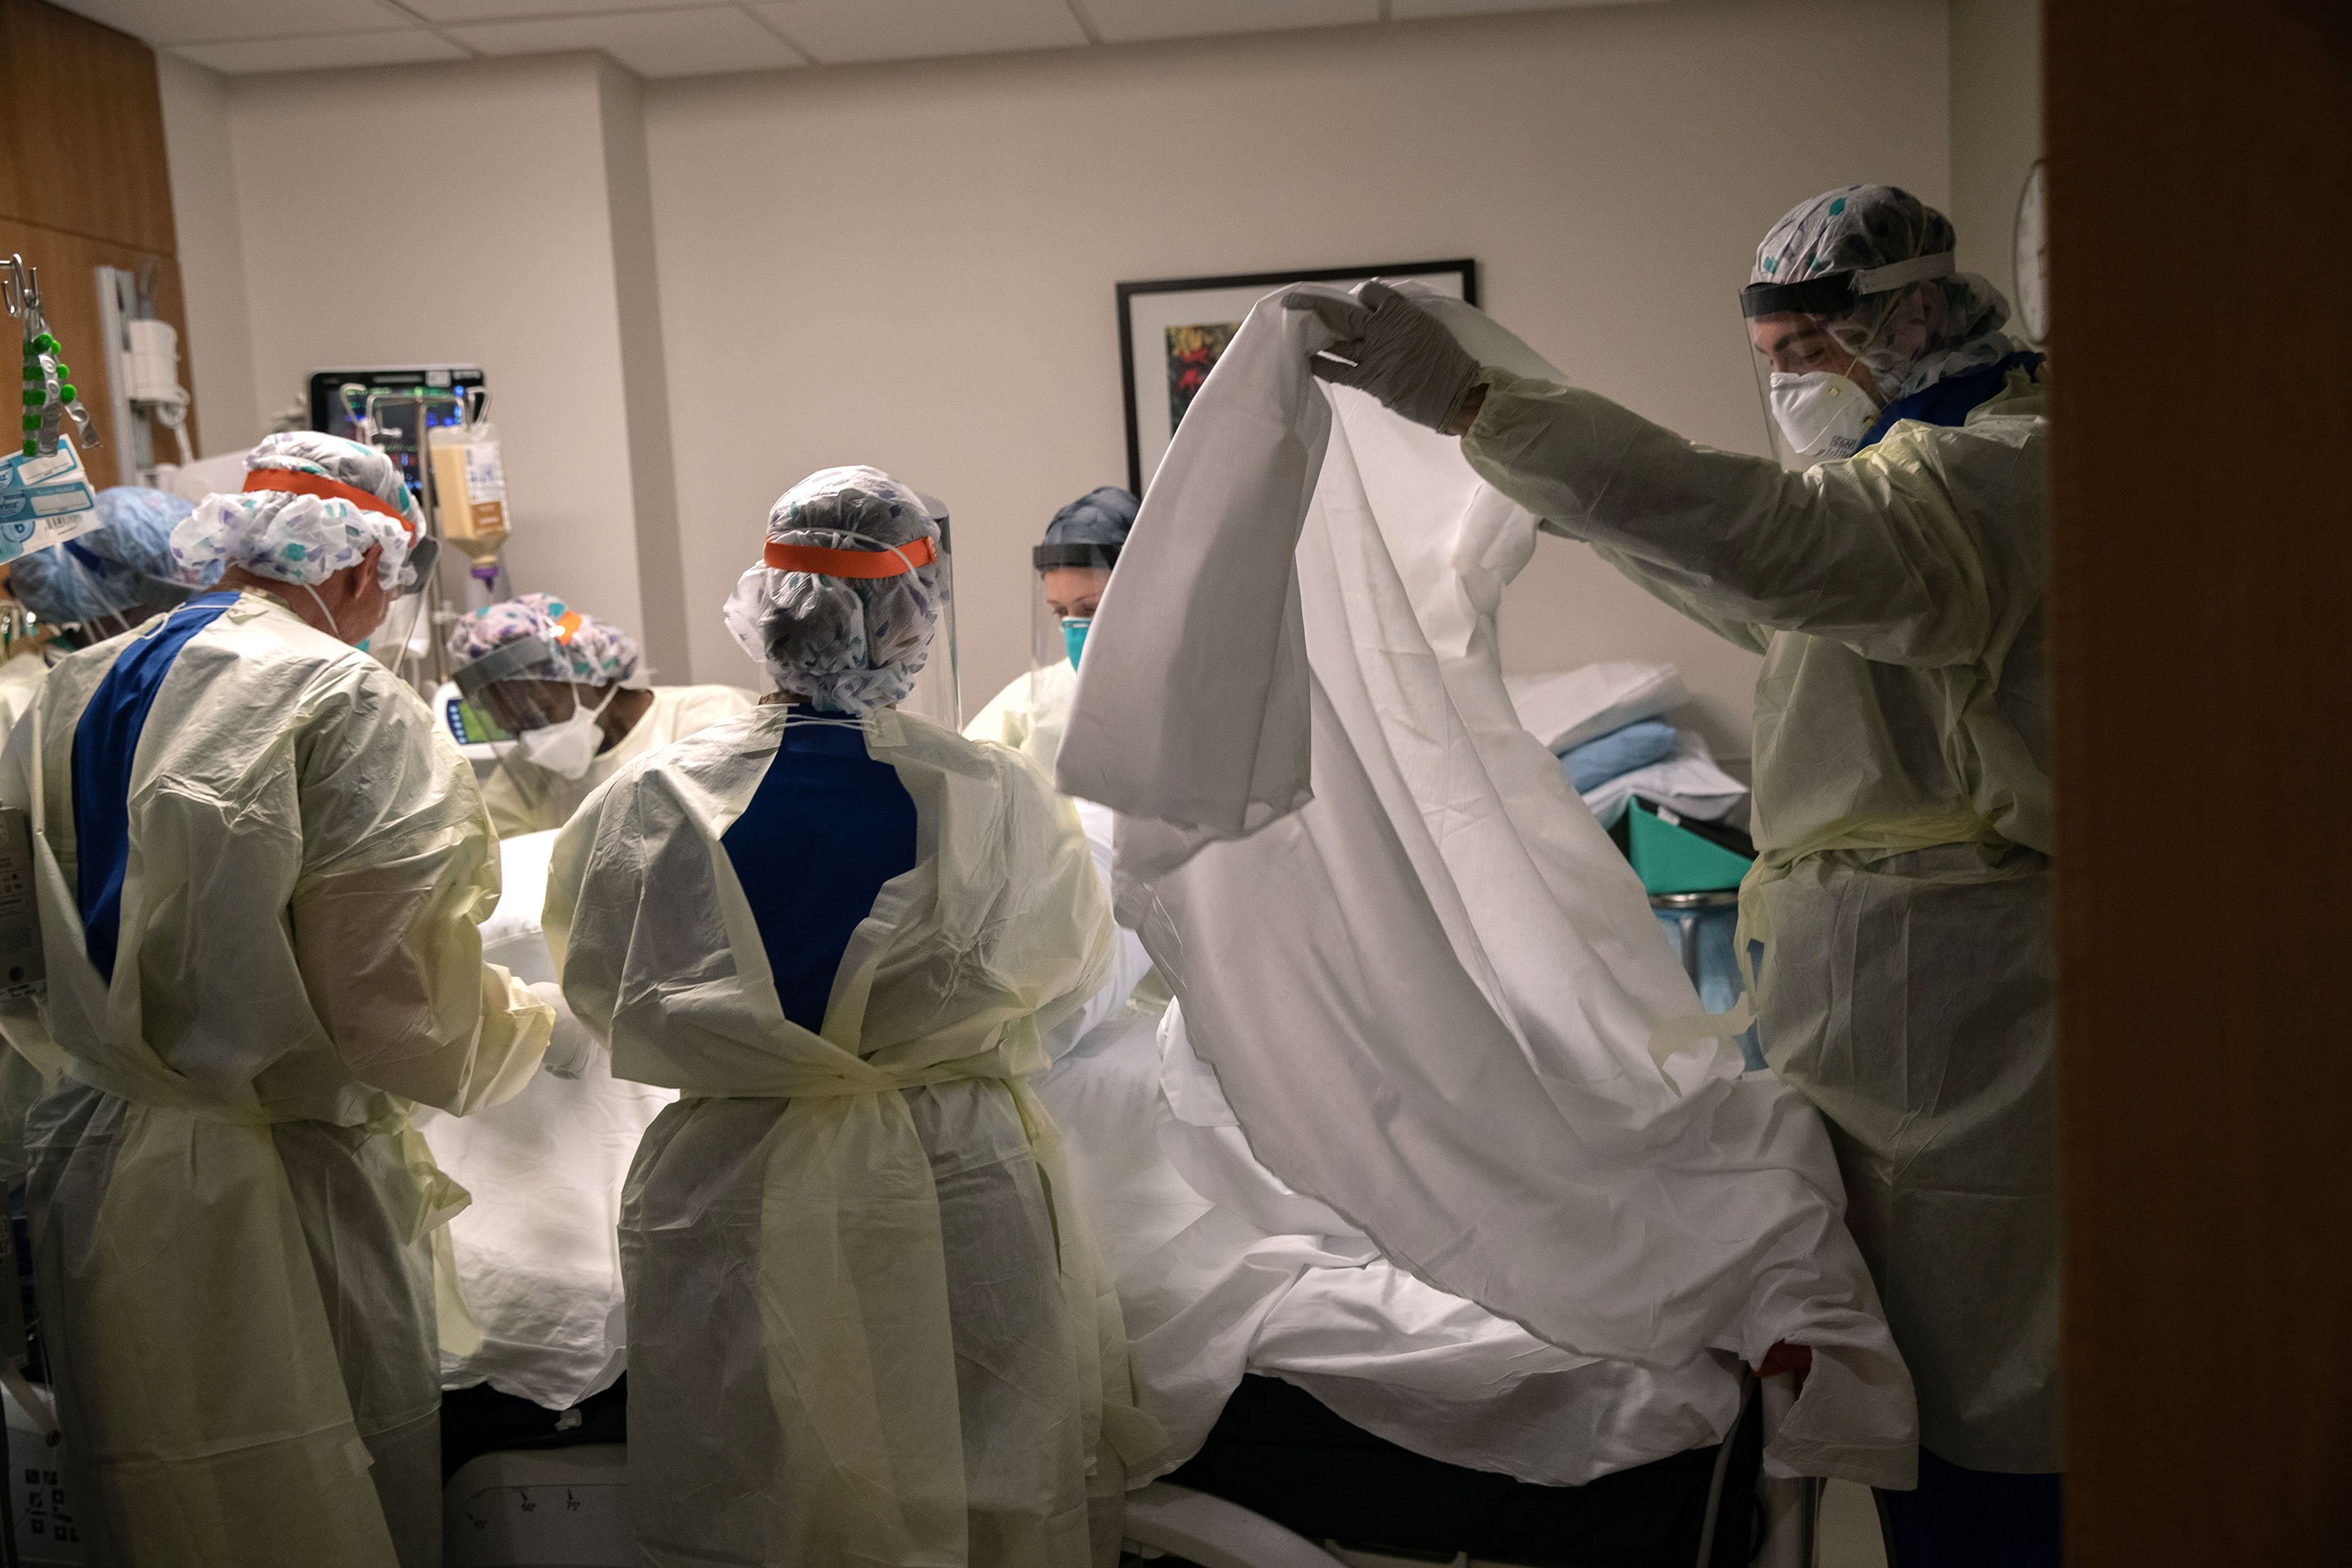 Medical workers tend to a coronavirus patient at Stamford Hospital on April 24 in Stamford, Connecticut.